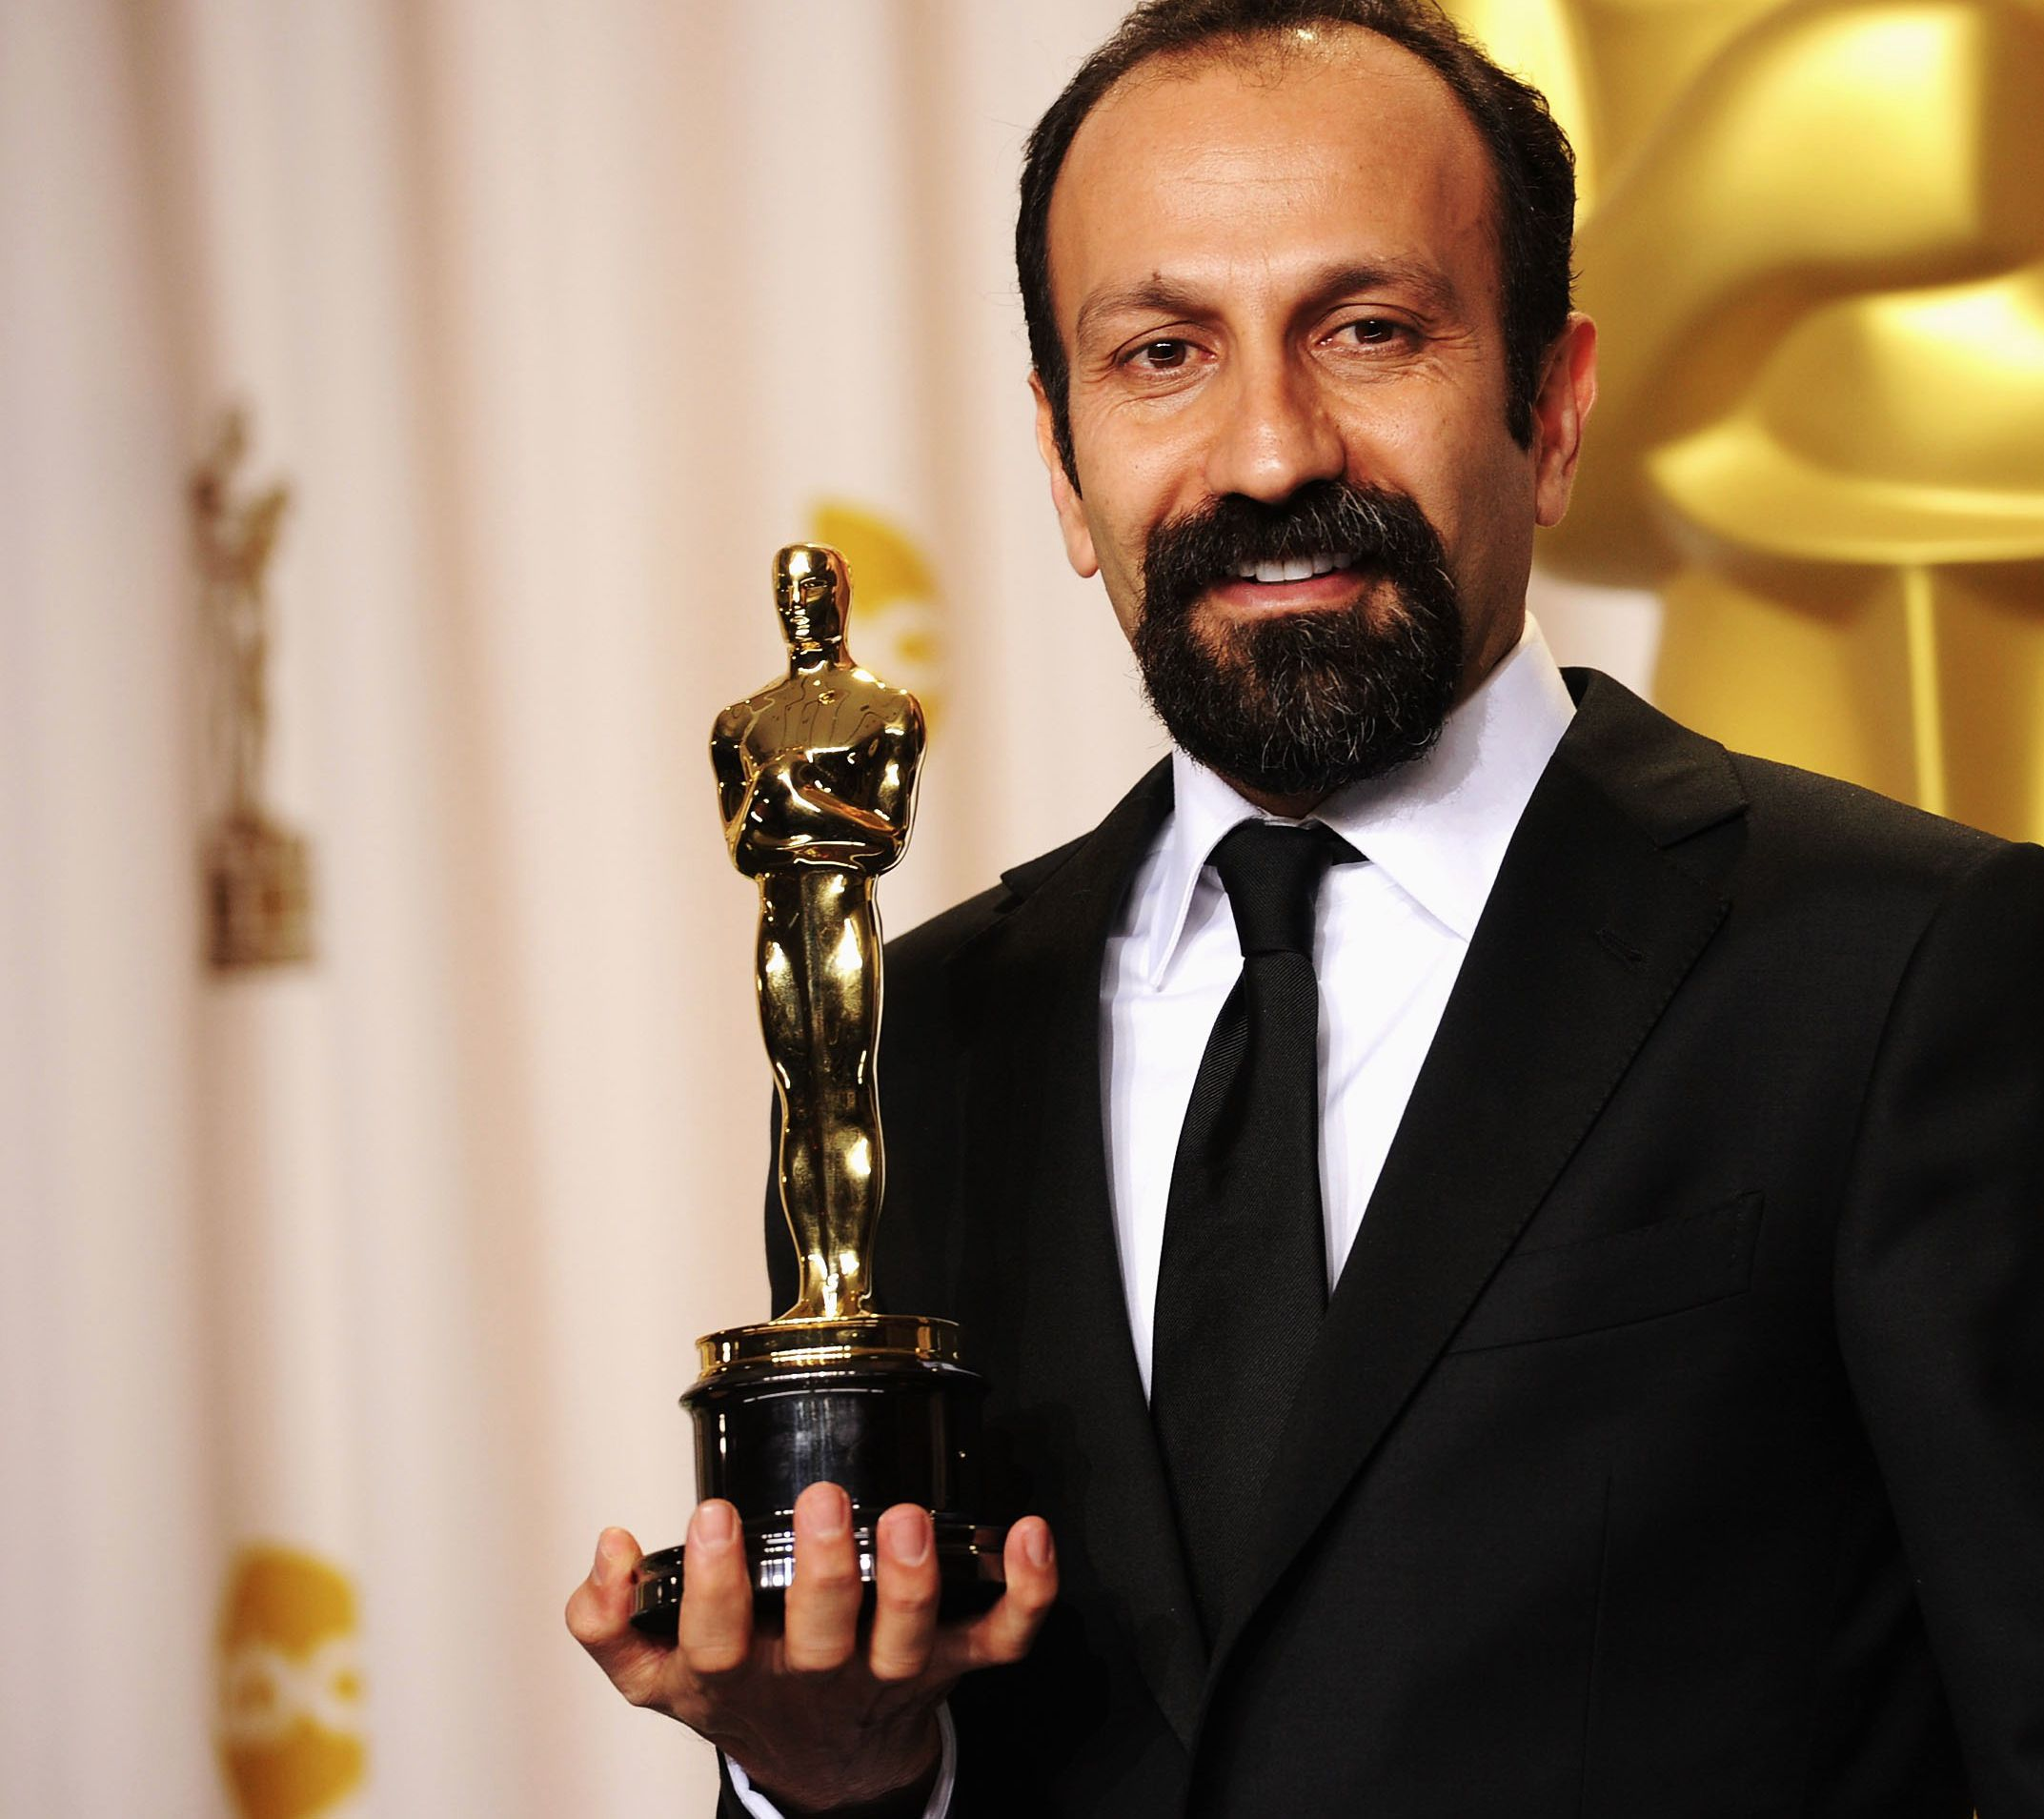 Donald Trump Couldn't Silence This Syrian Oscar Winner